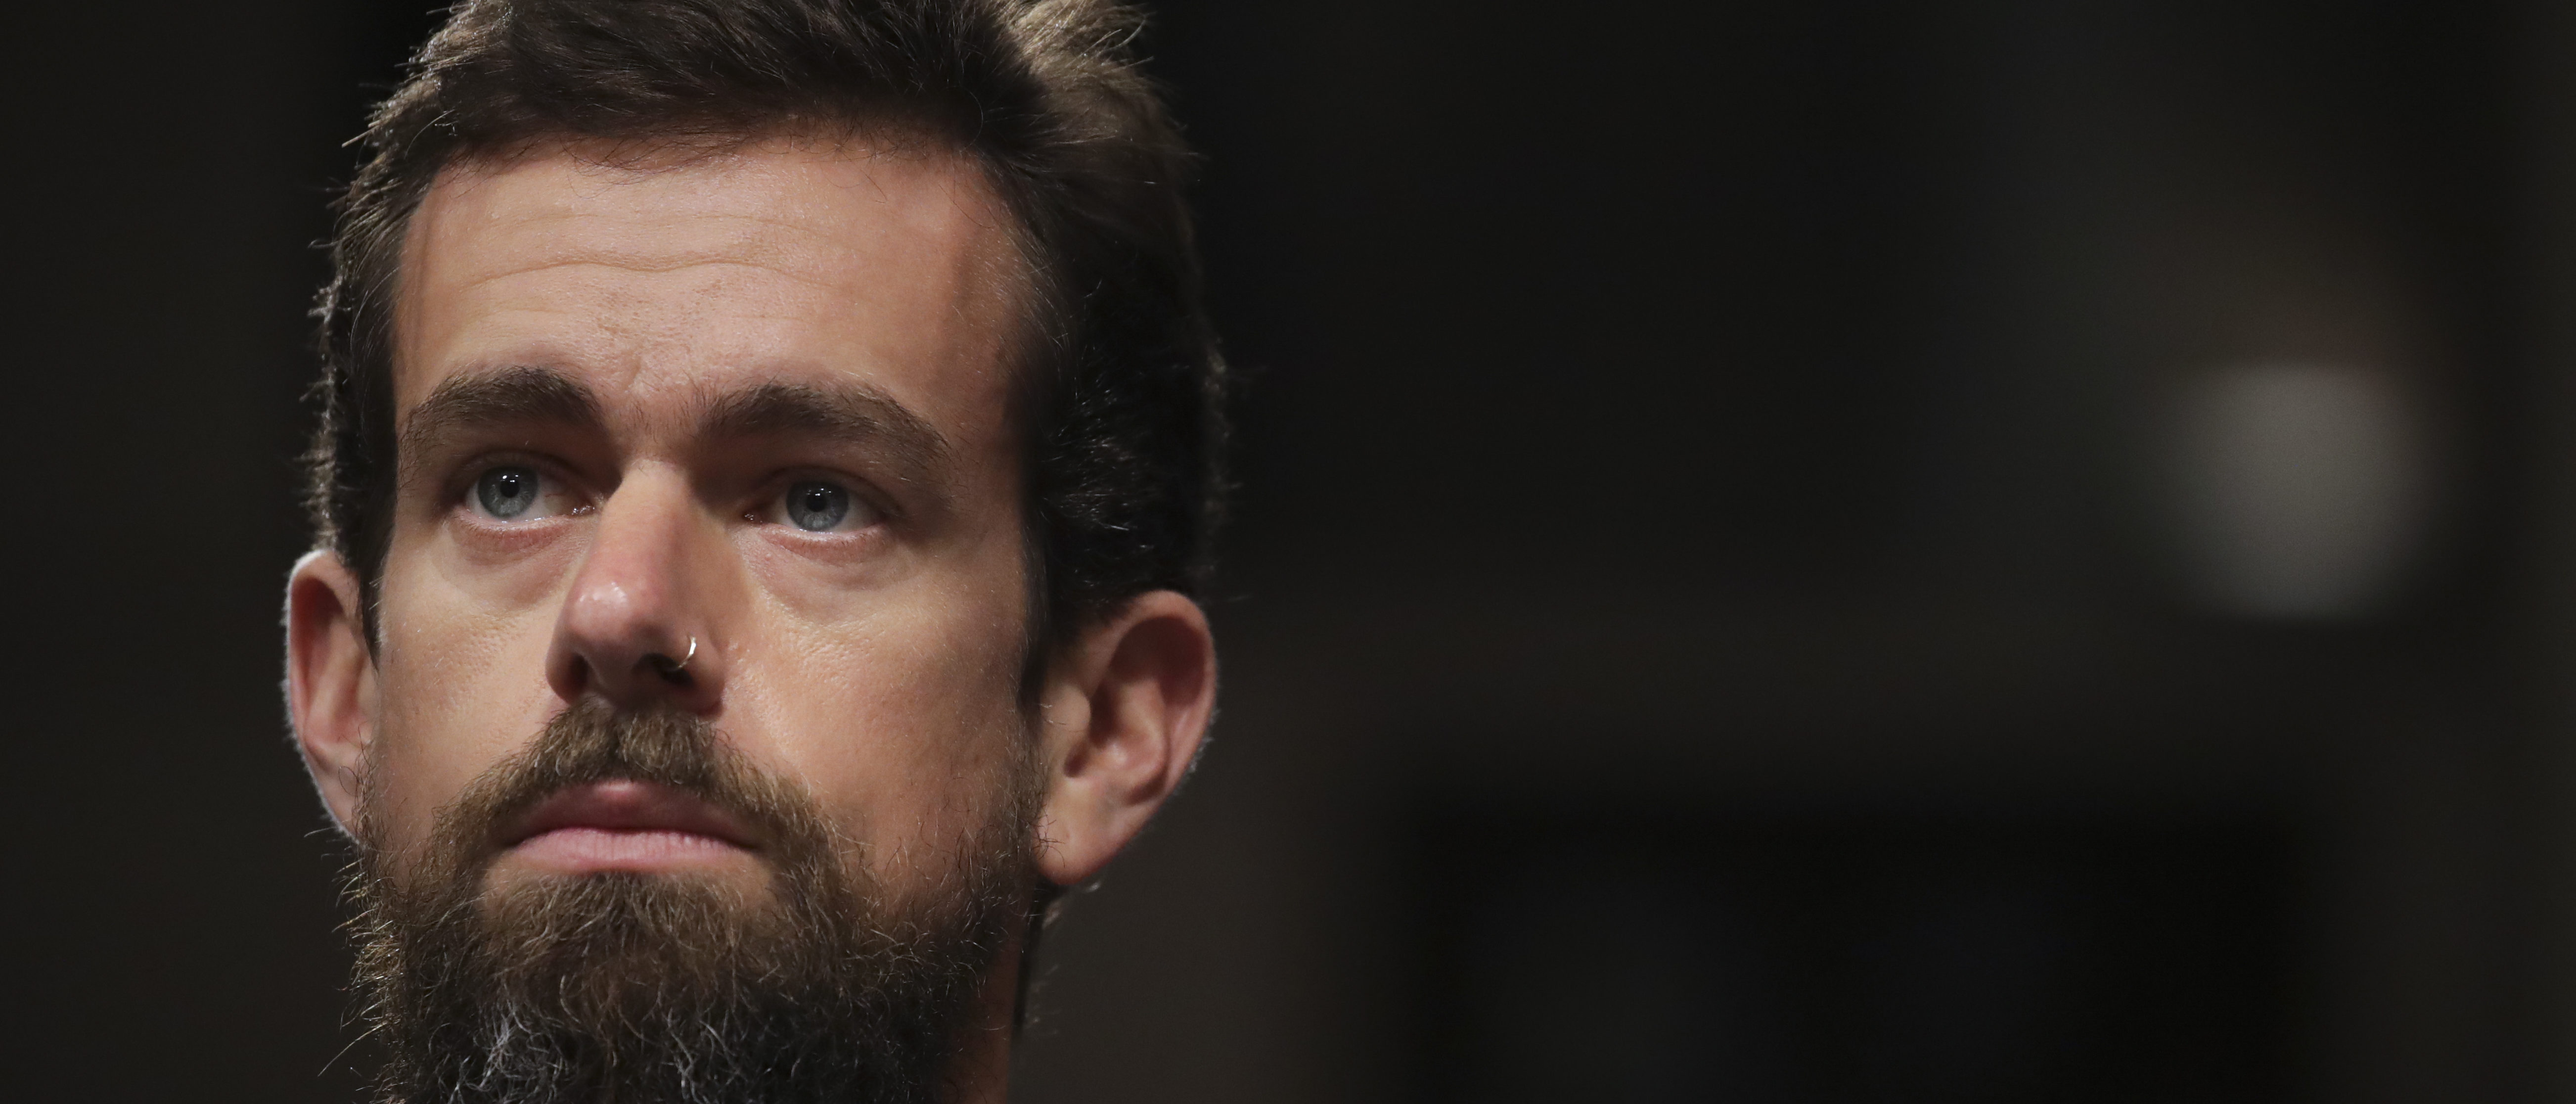 Twitter chief executive officer Jack Dorsey looks on during a Senate Intelligence Committee hearing concerning foreign influence operations' use of social media platforms, on Capitol Hill, September 5, 2018 in Washington, DC. (Drew Angerer/Getty Images)